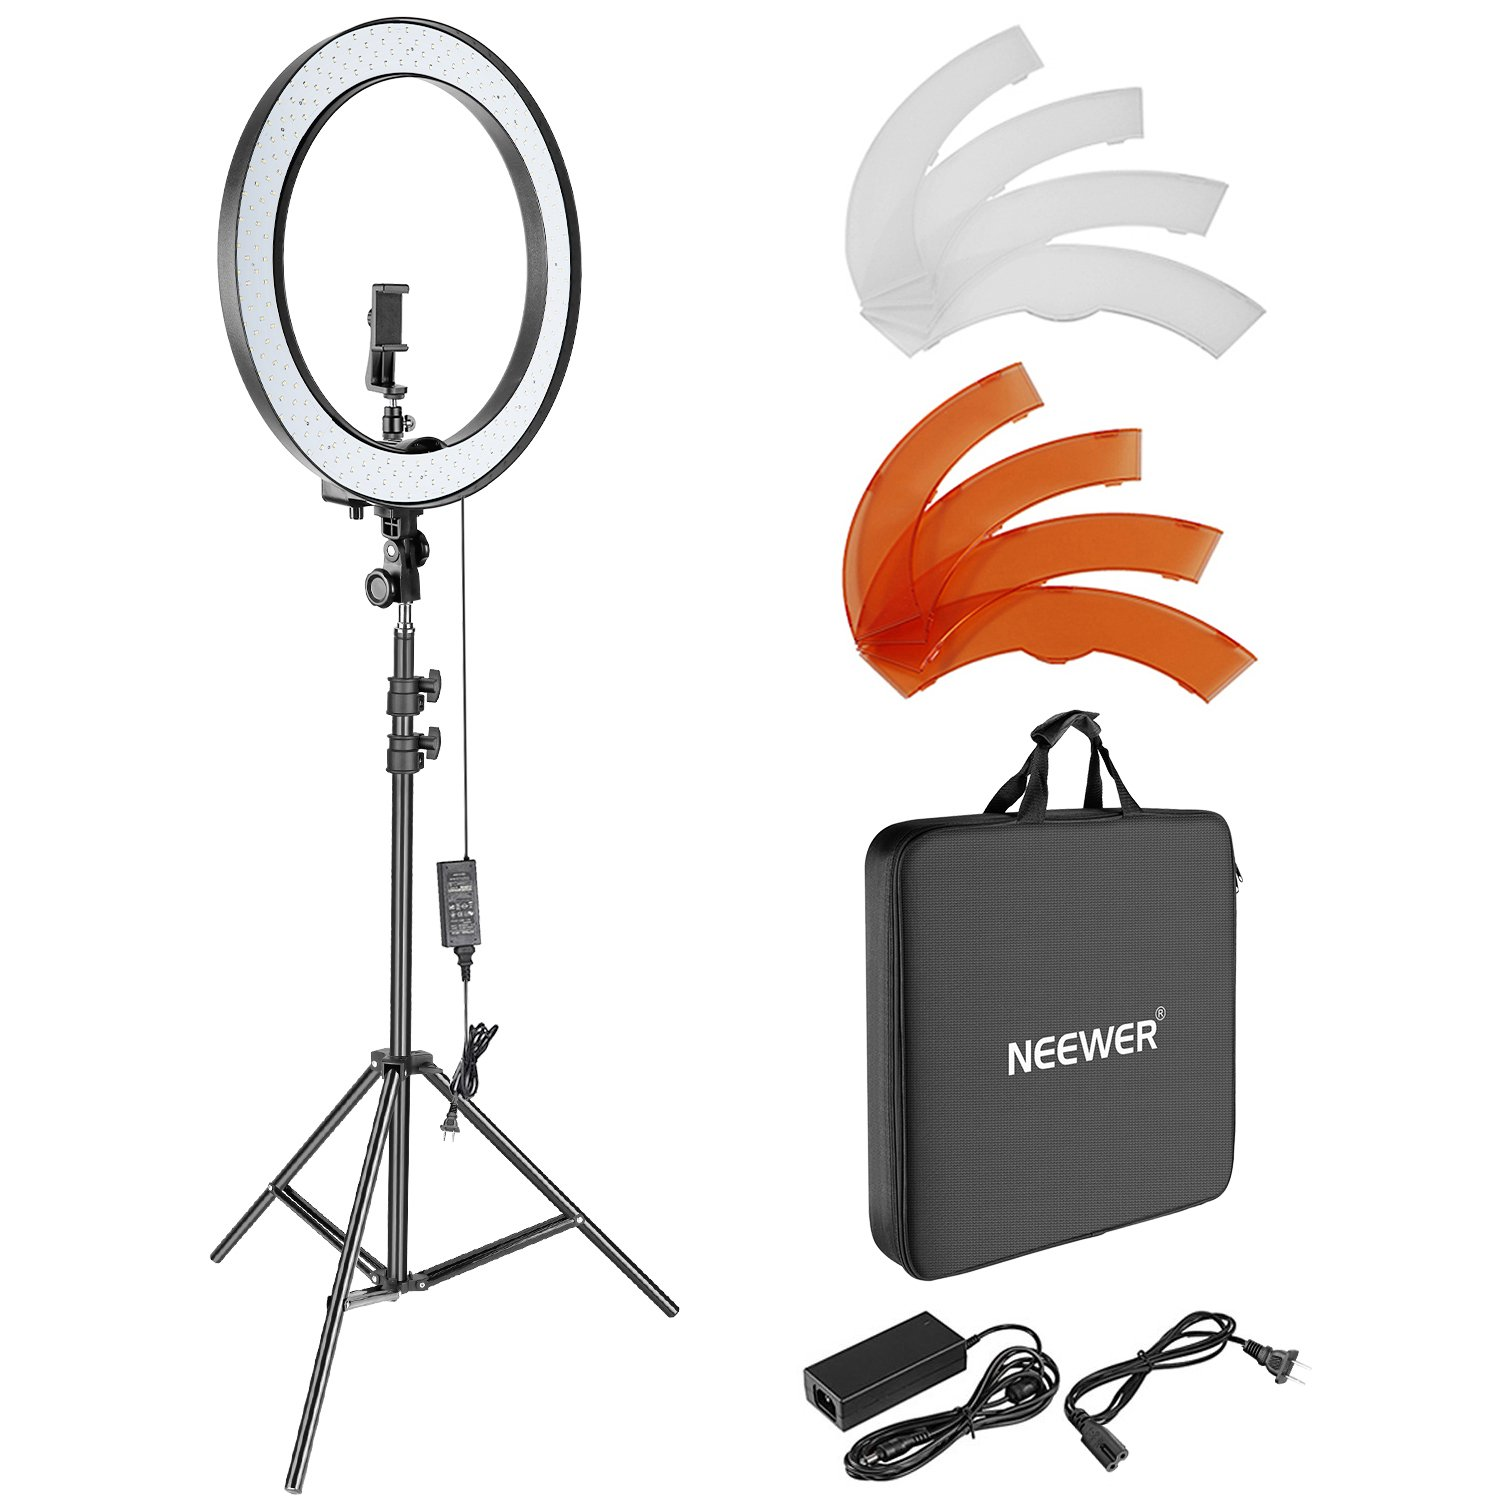 Neewer 18-inch Outer Dimmable SMD LED Ring Light Lighting Kit with 78.7-inch Light Stand, Rotatable Phone Holder, Hot Shoe Adapter, Filters and Carrying Bag for Selfie Portrait YouTube Video Shooting by Neewer